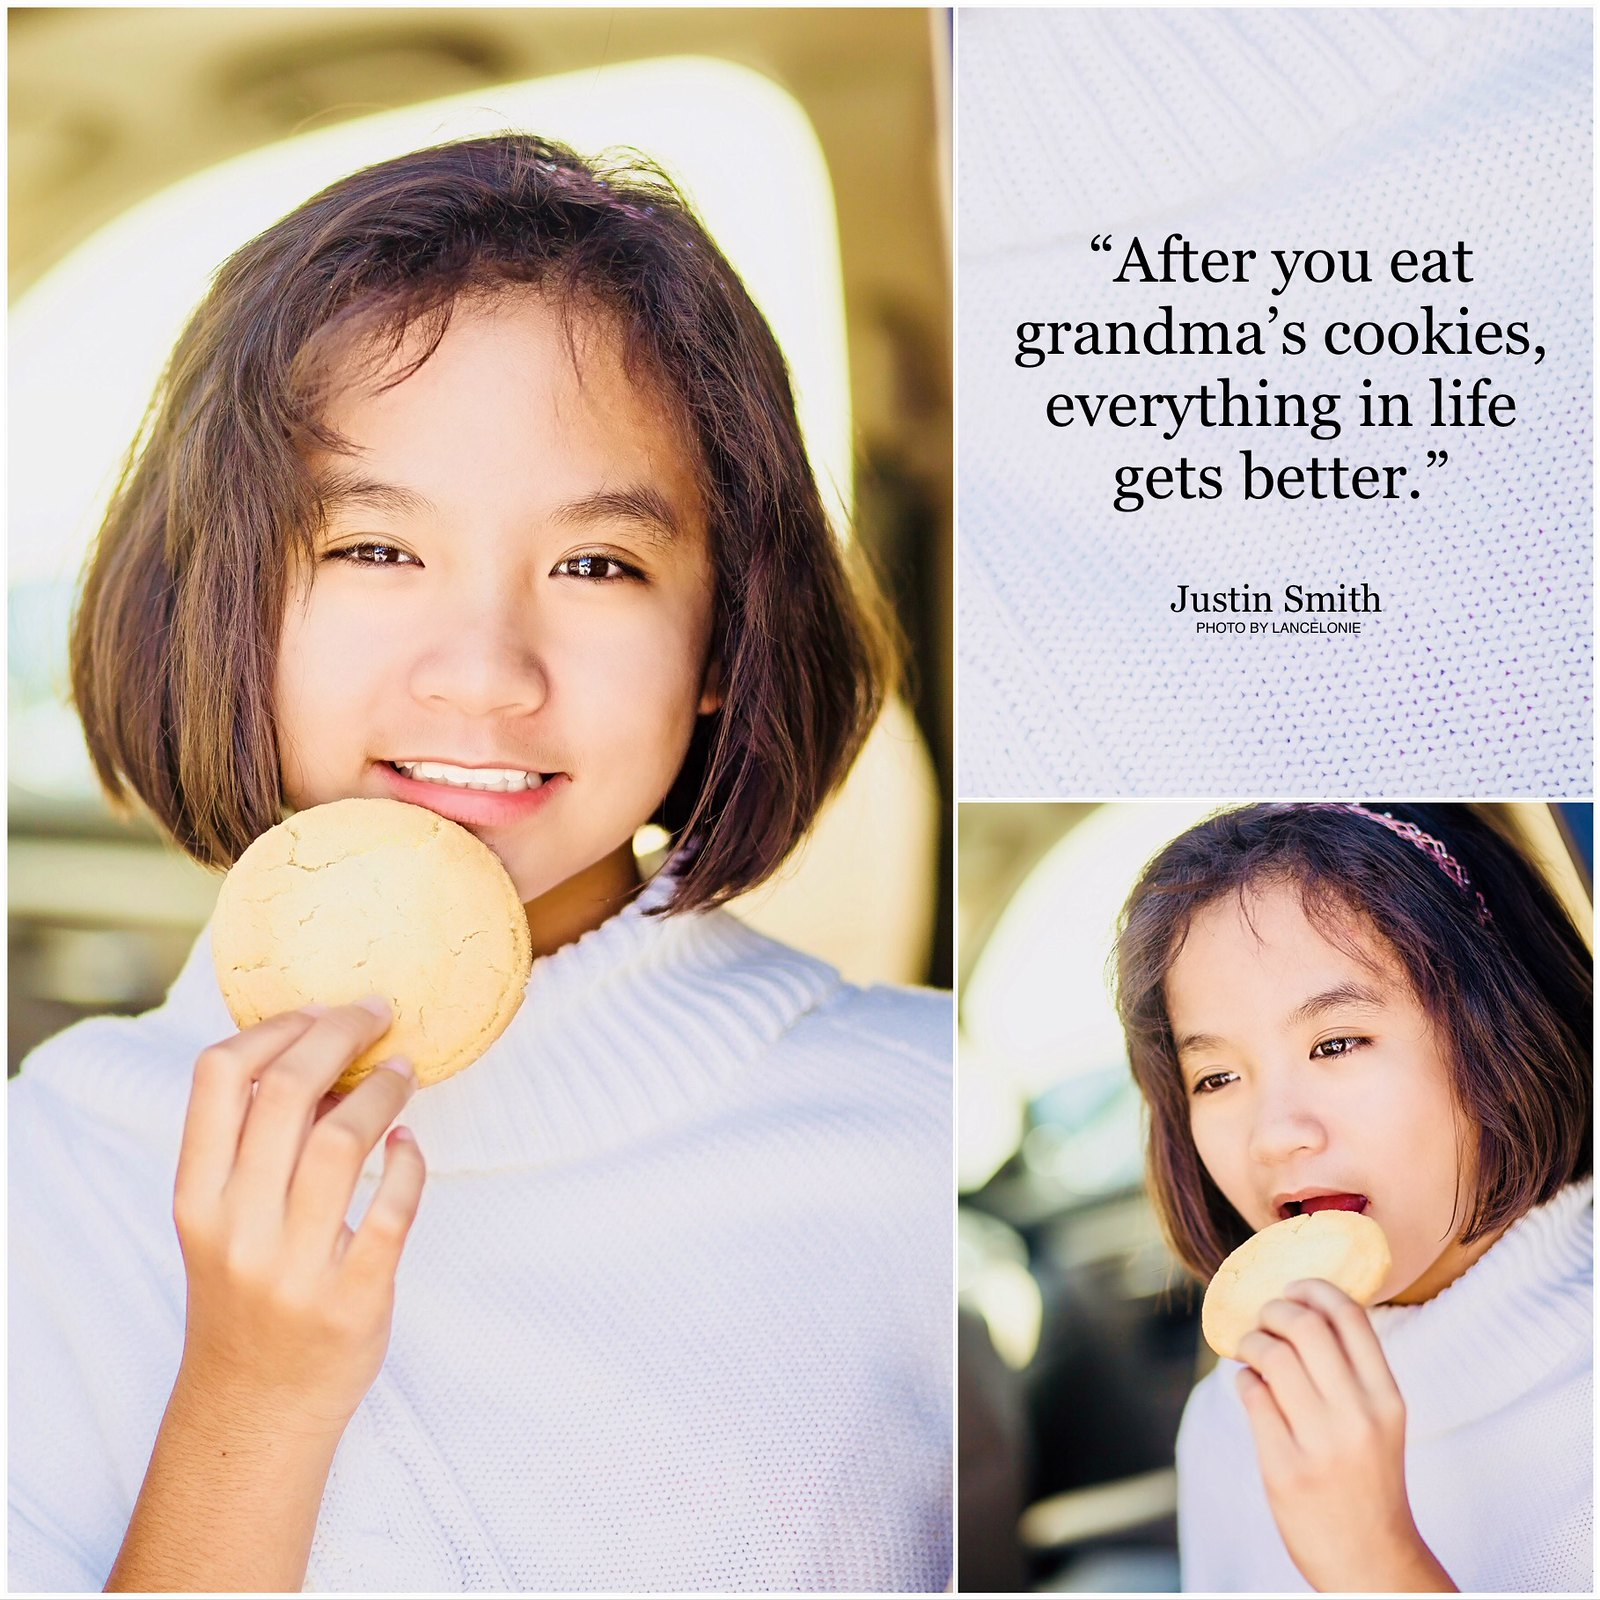 Grandma's sugar cookies by lancelonie